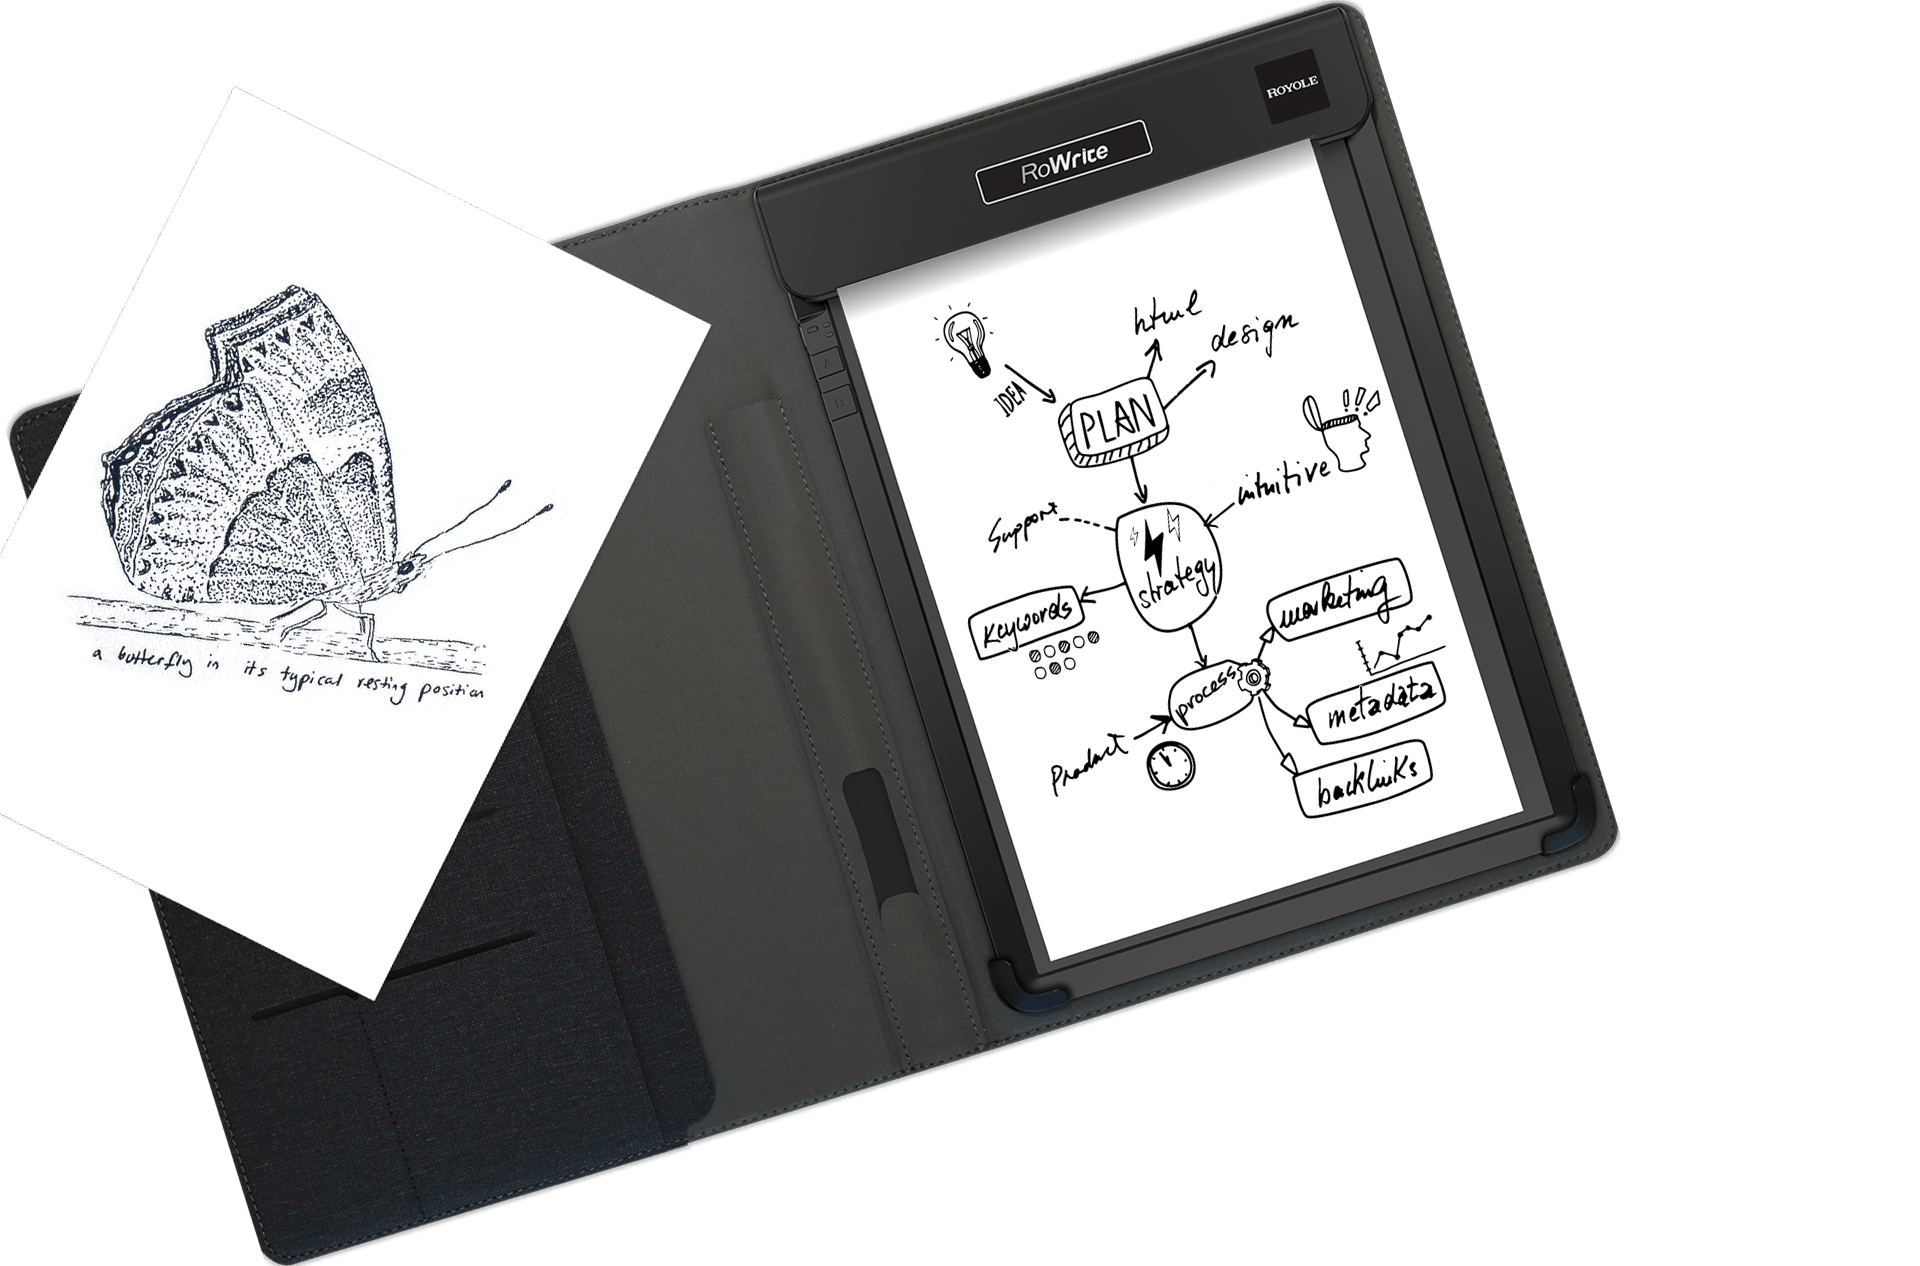 Clip folio legal pad. Rowrite smart writing royole